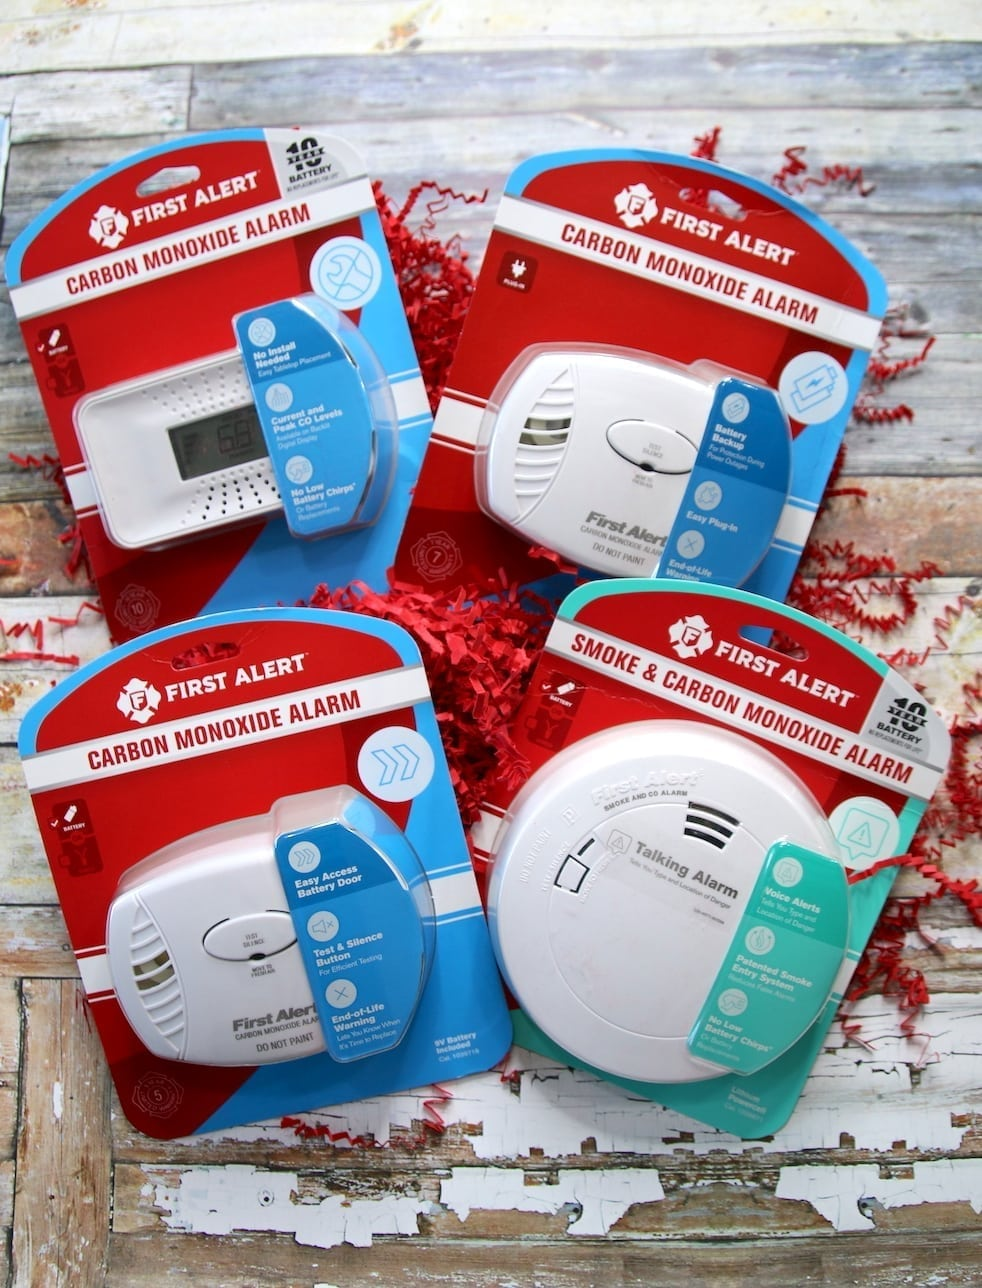 First Alert CO Alarm - products